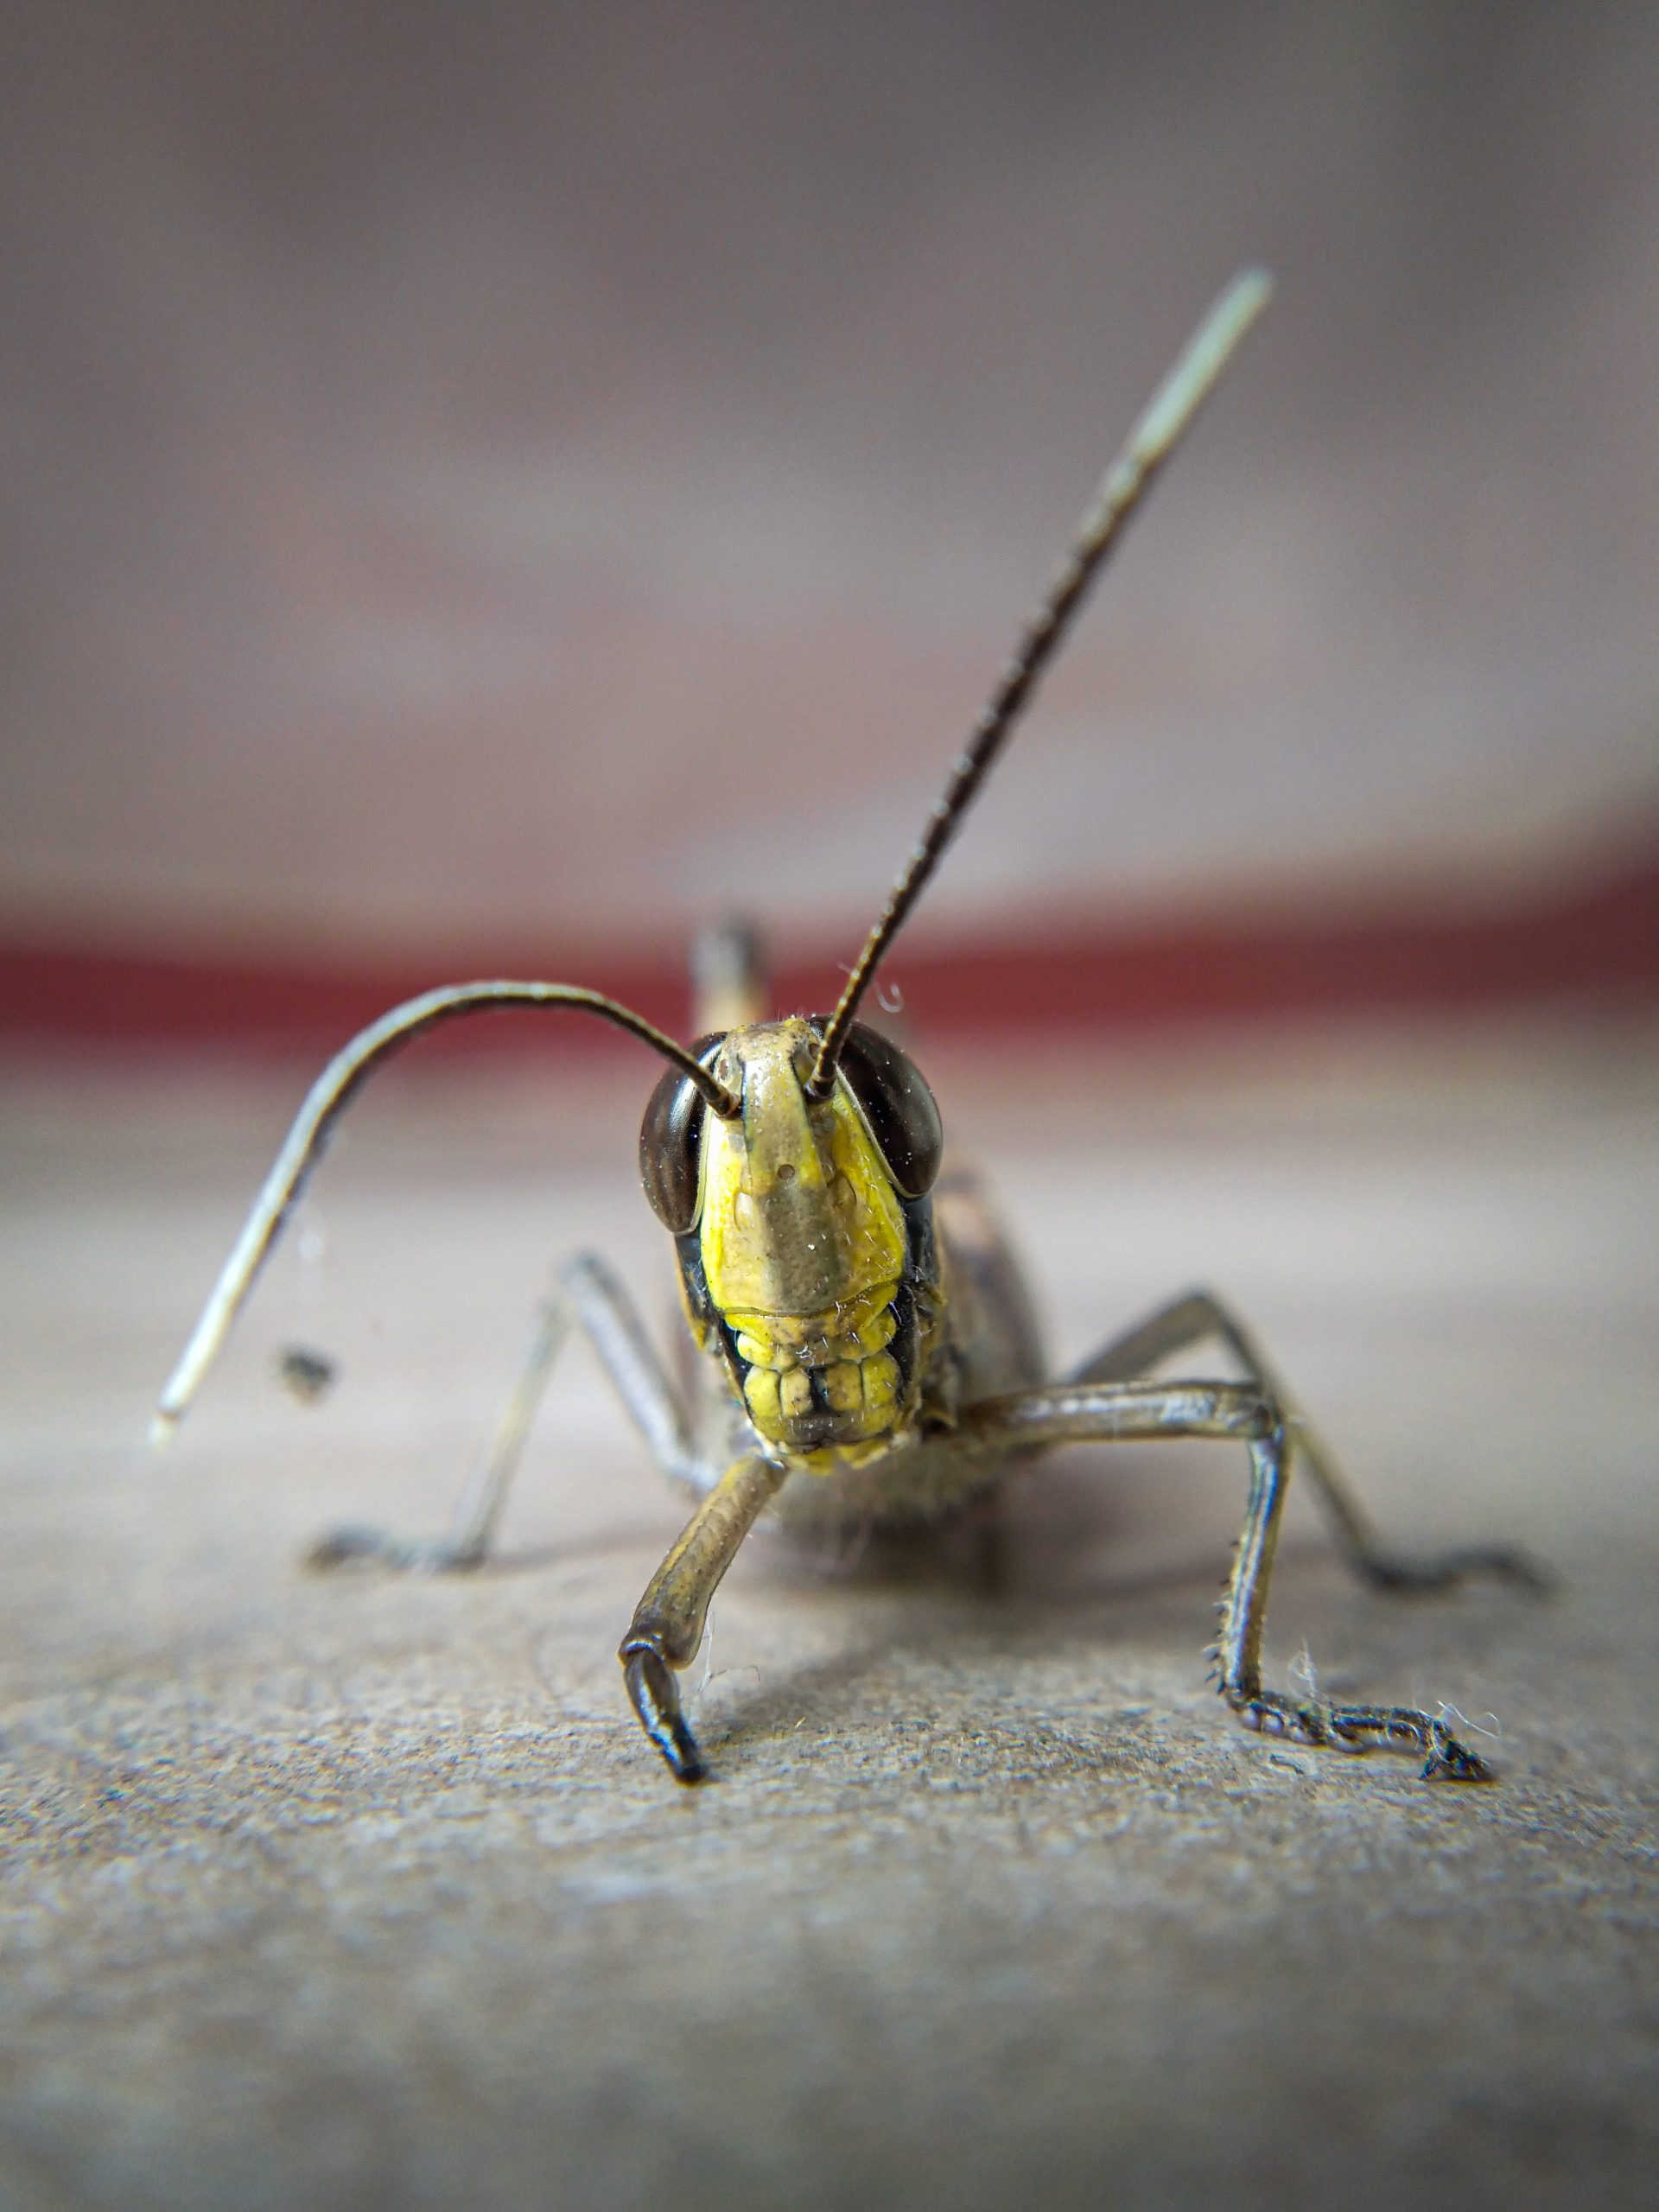 Injured Insect